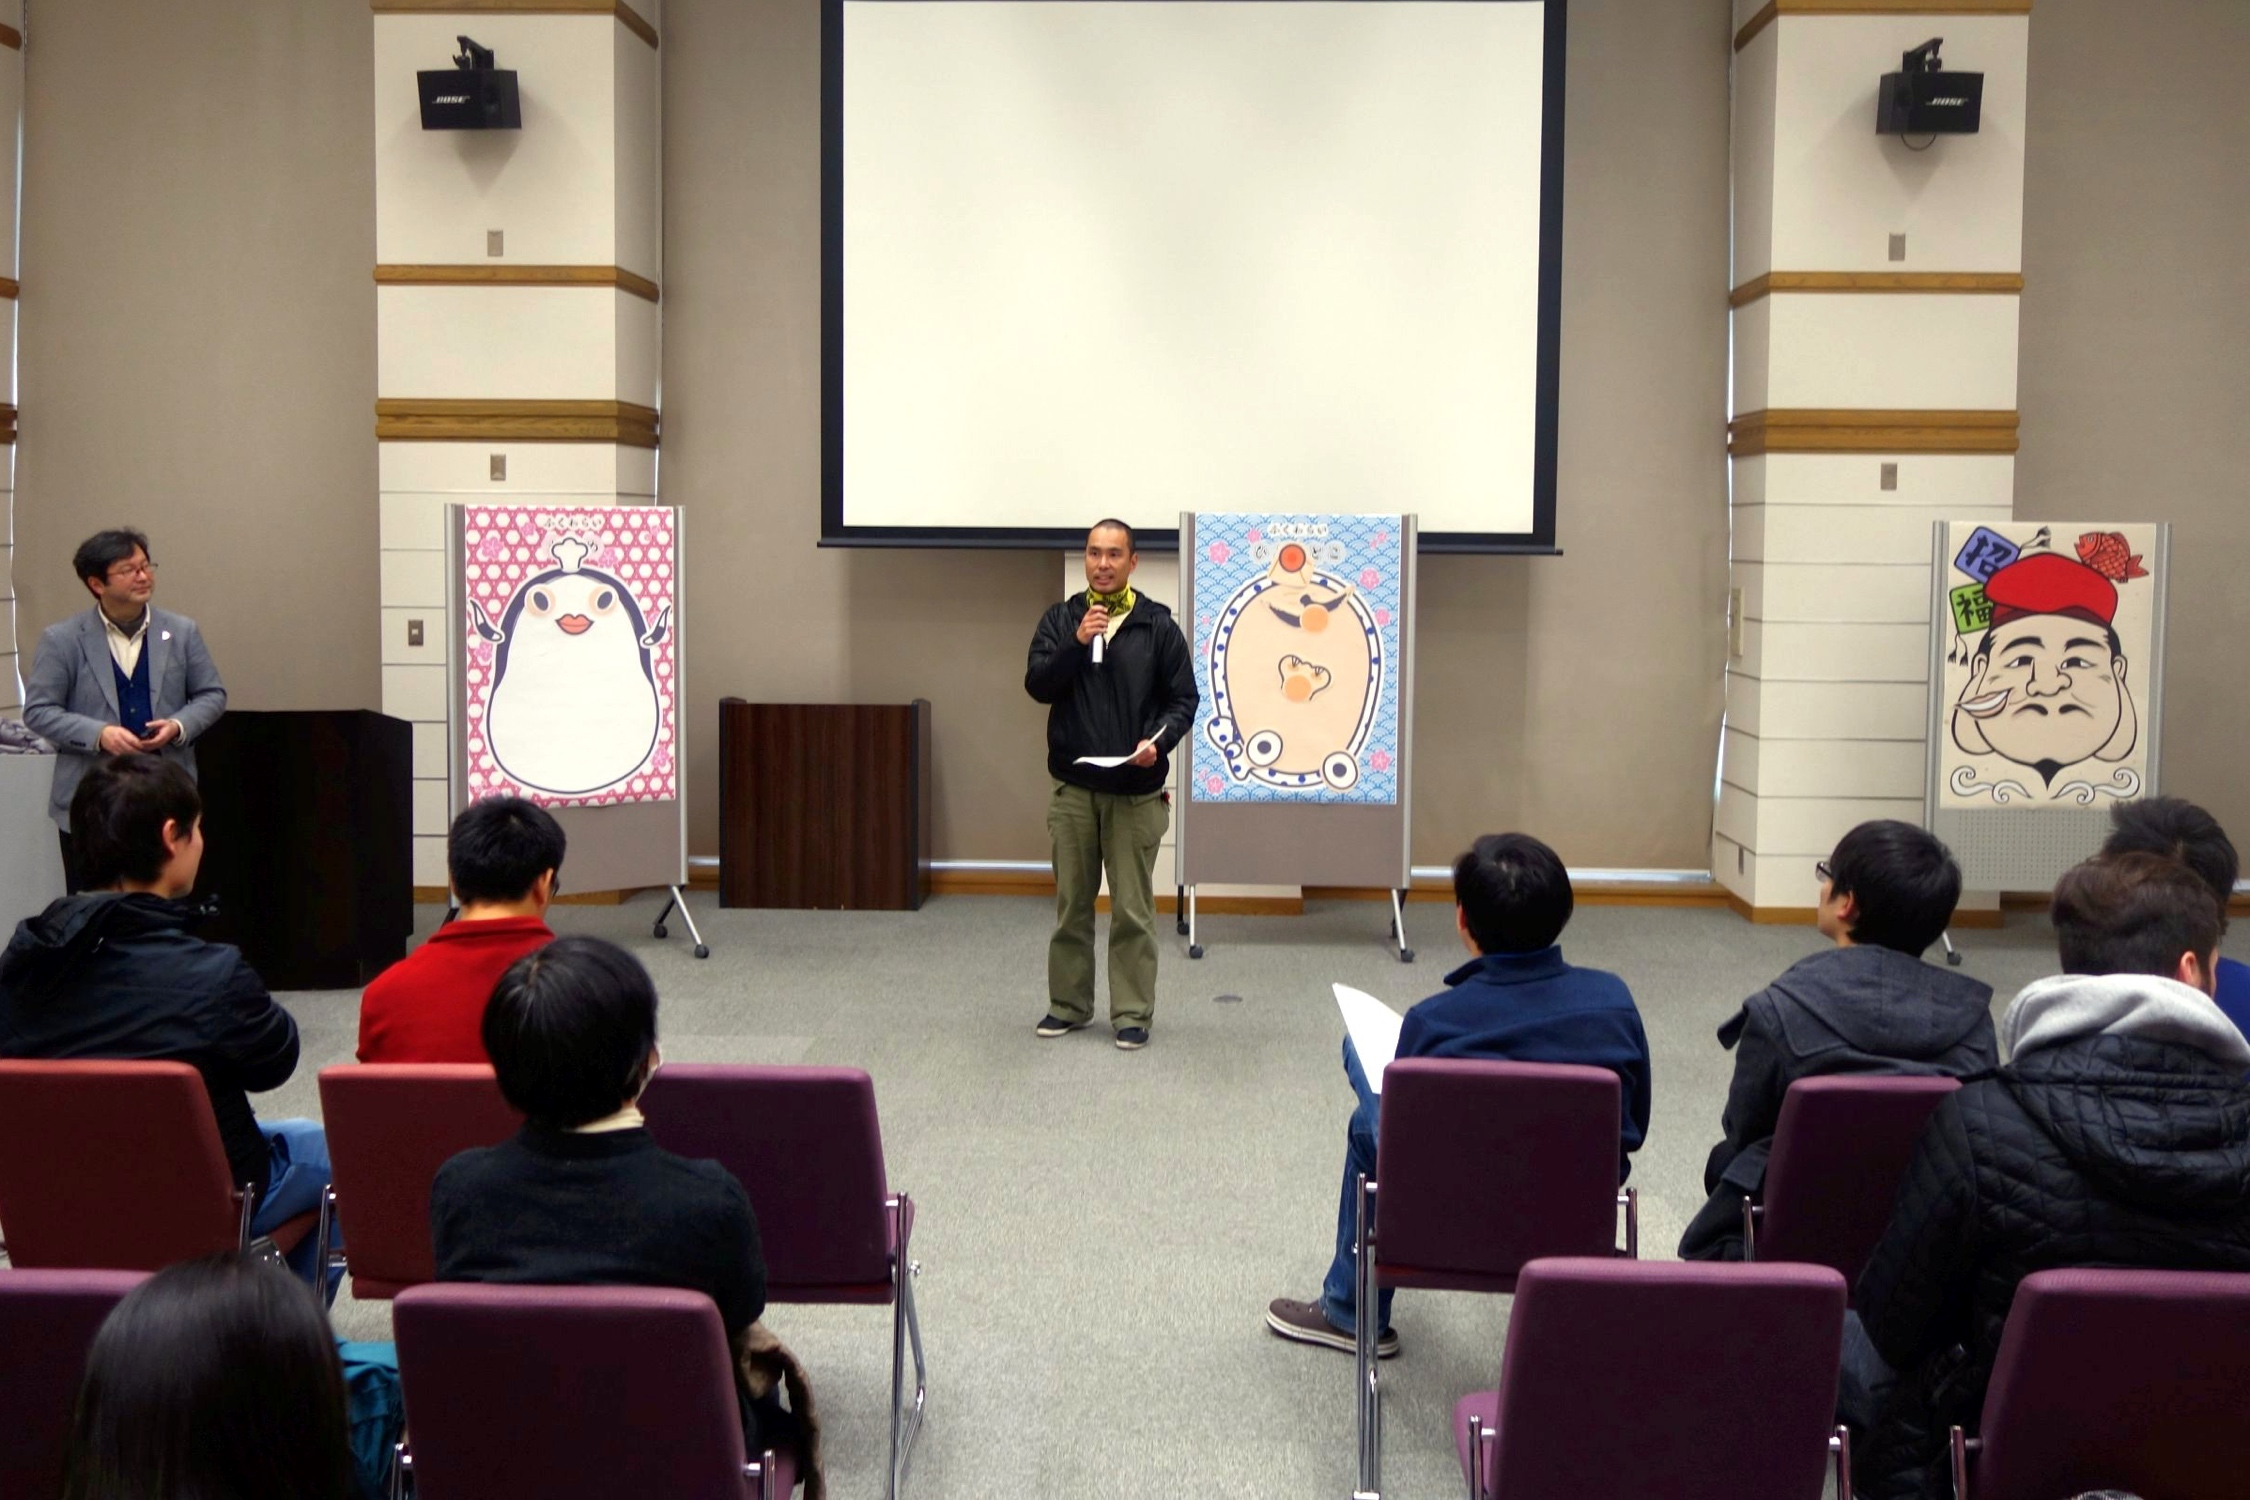 A partner of the NAIST Volunteering Group announces free kung fu classes near Ikoma.